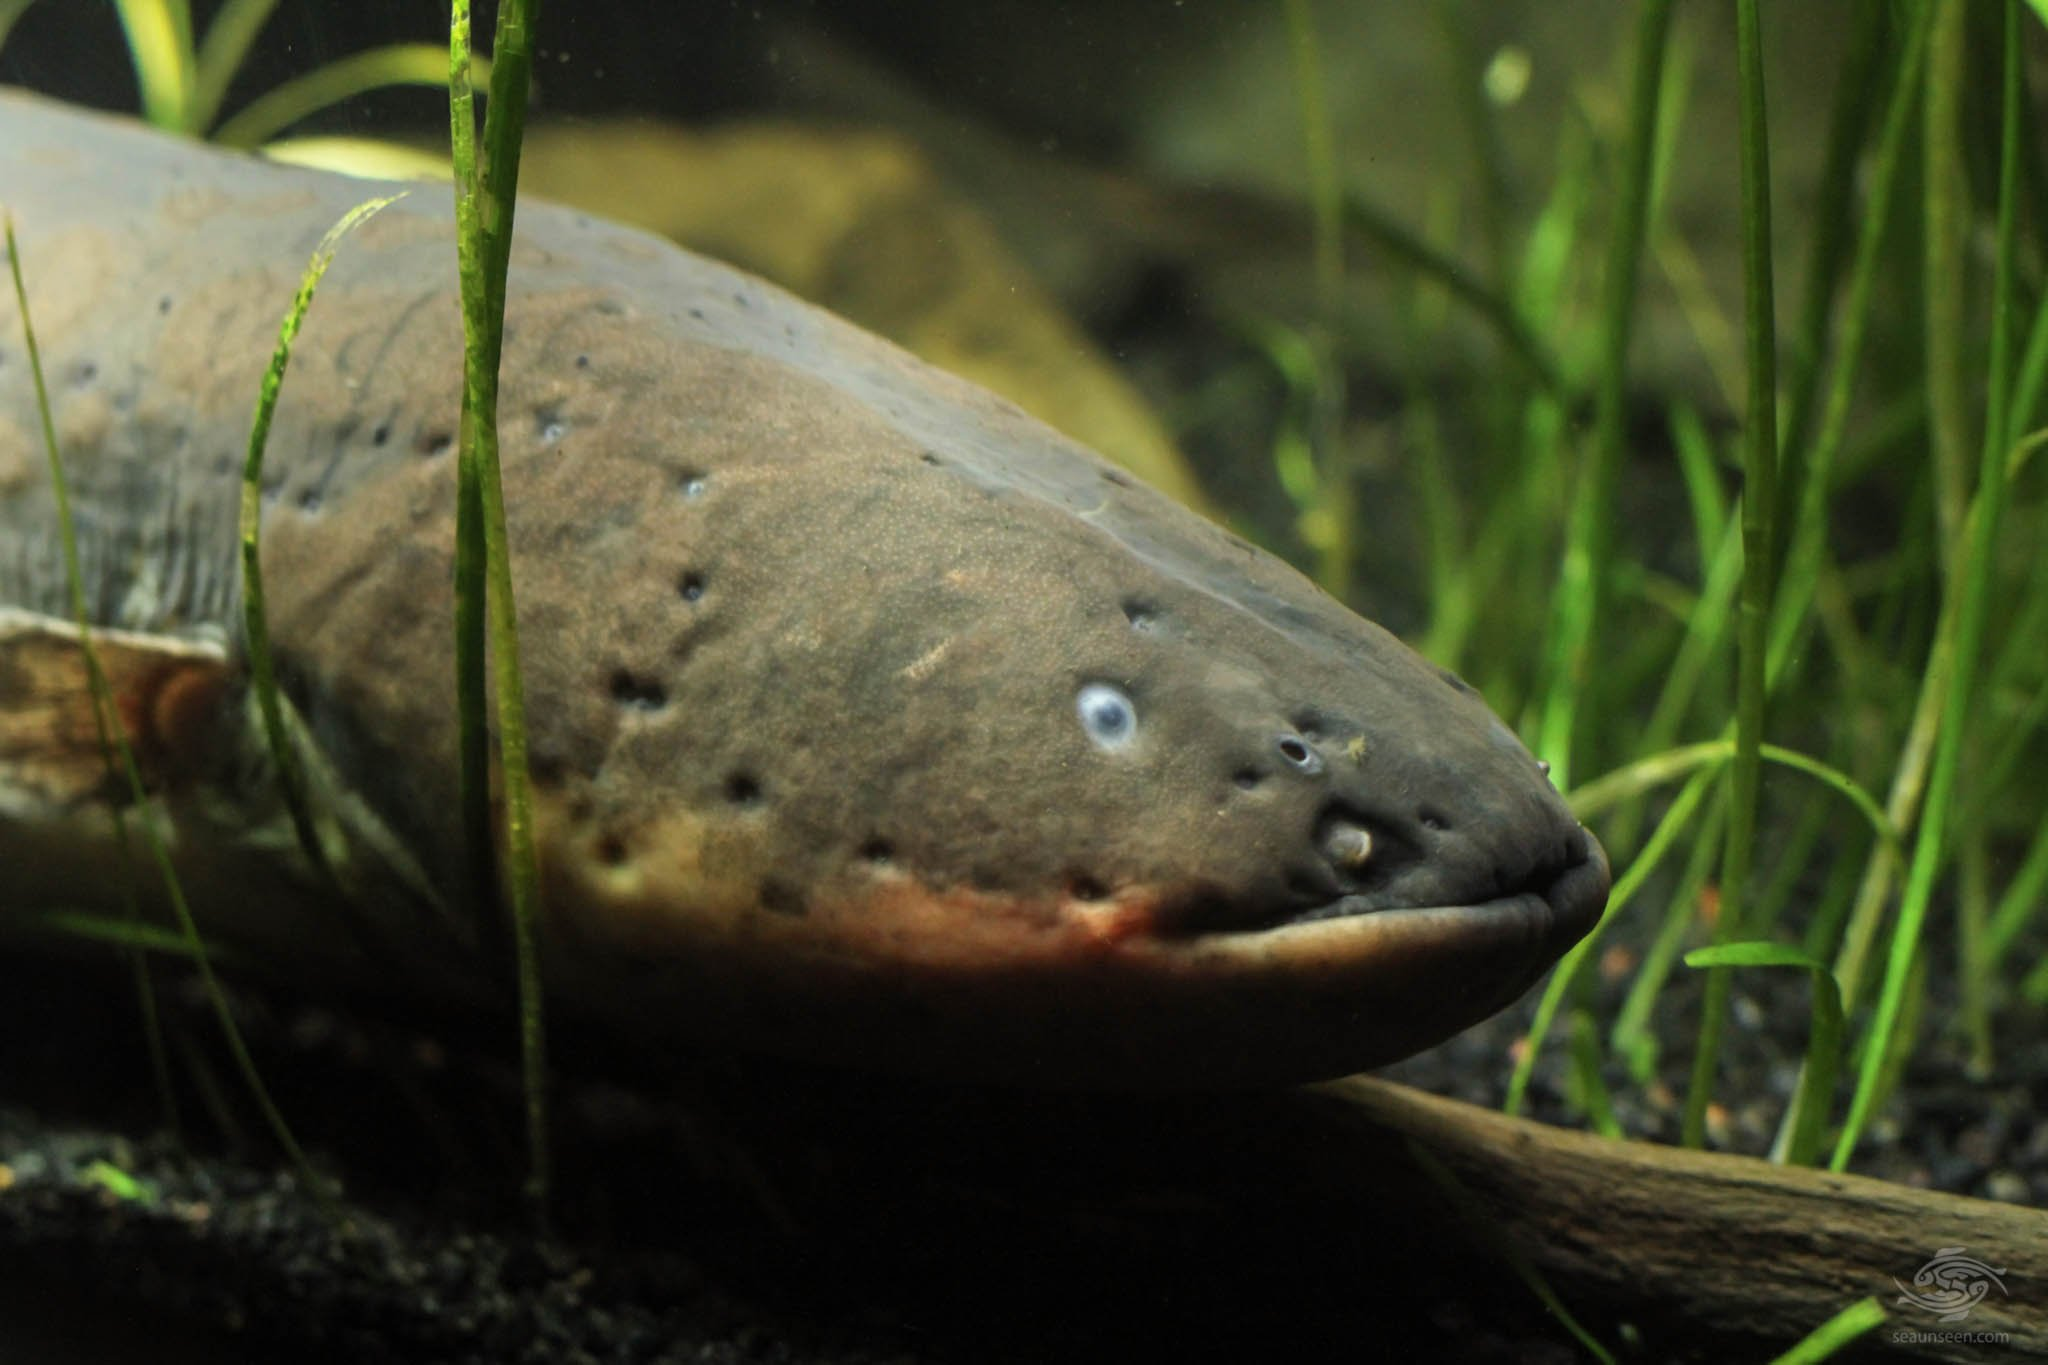 Electric Eel Head Shot - Seaunseen